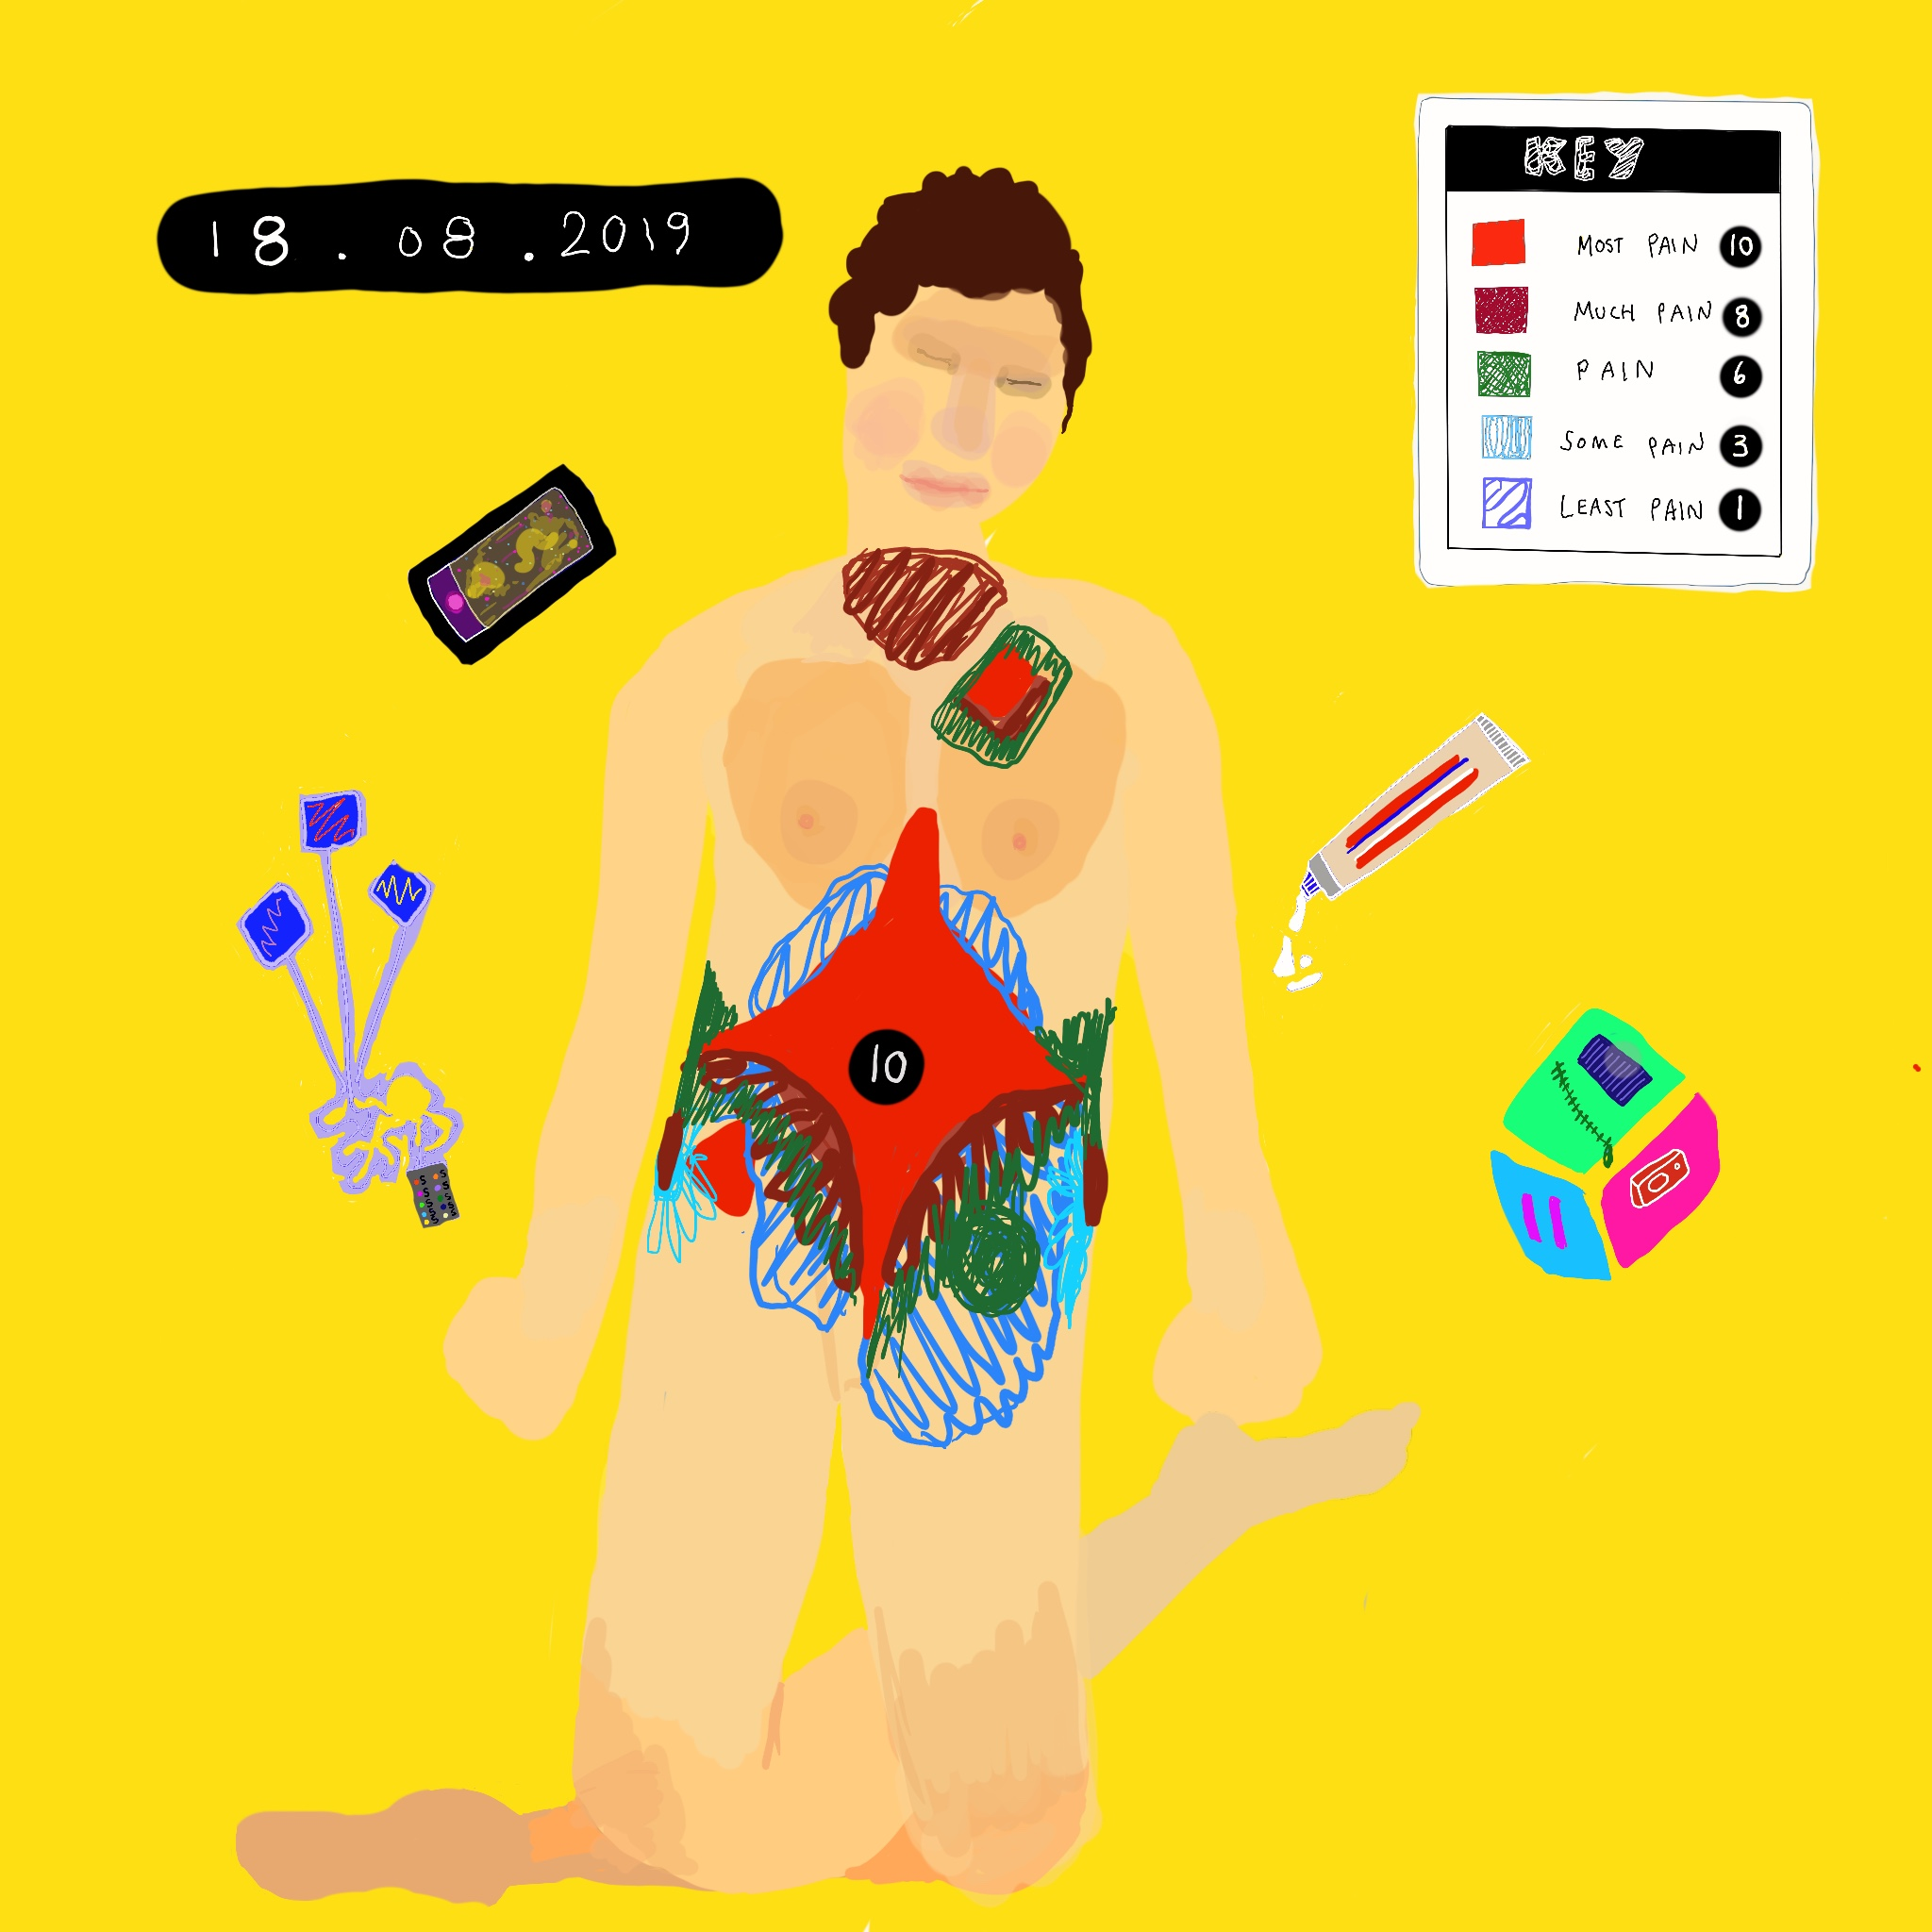 A digital painting of Touretteshero showing a colour-coded map of pain on Touretteshero's body. In top corner of the image, a key showing the intensity of the pain on a scale of 1 to 10 corresponding to a colour. Helpful objects surround her eg. phone, alarm and pain relief cream.